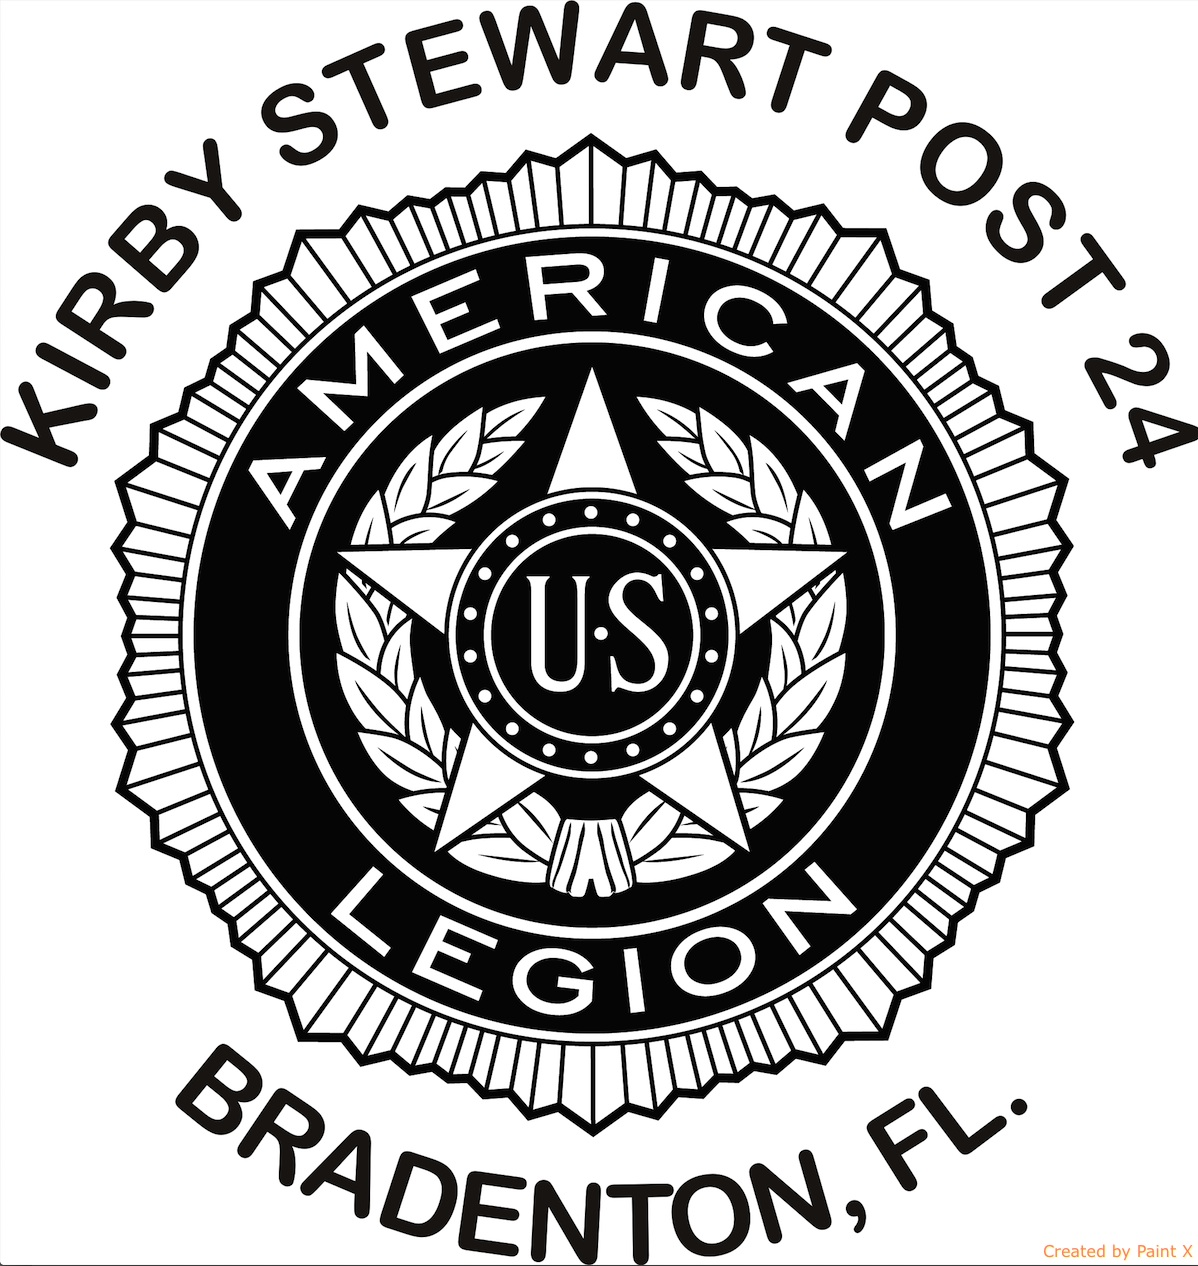 AMERICAN LEGION KIRBY STEWART POST 24